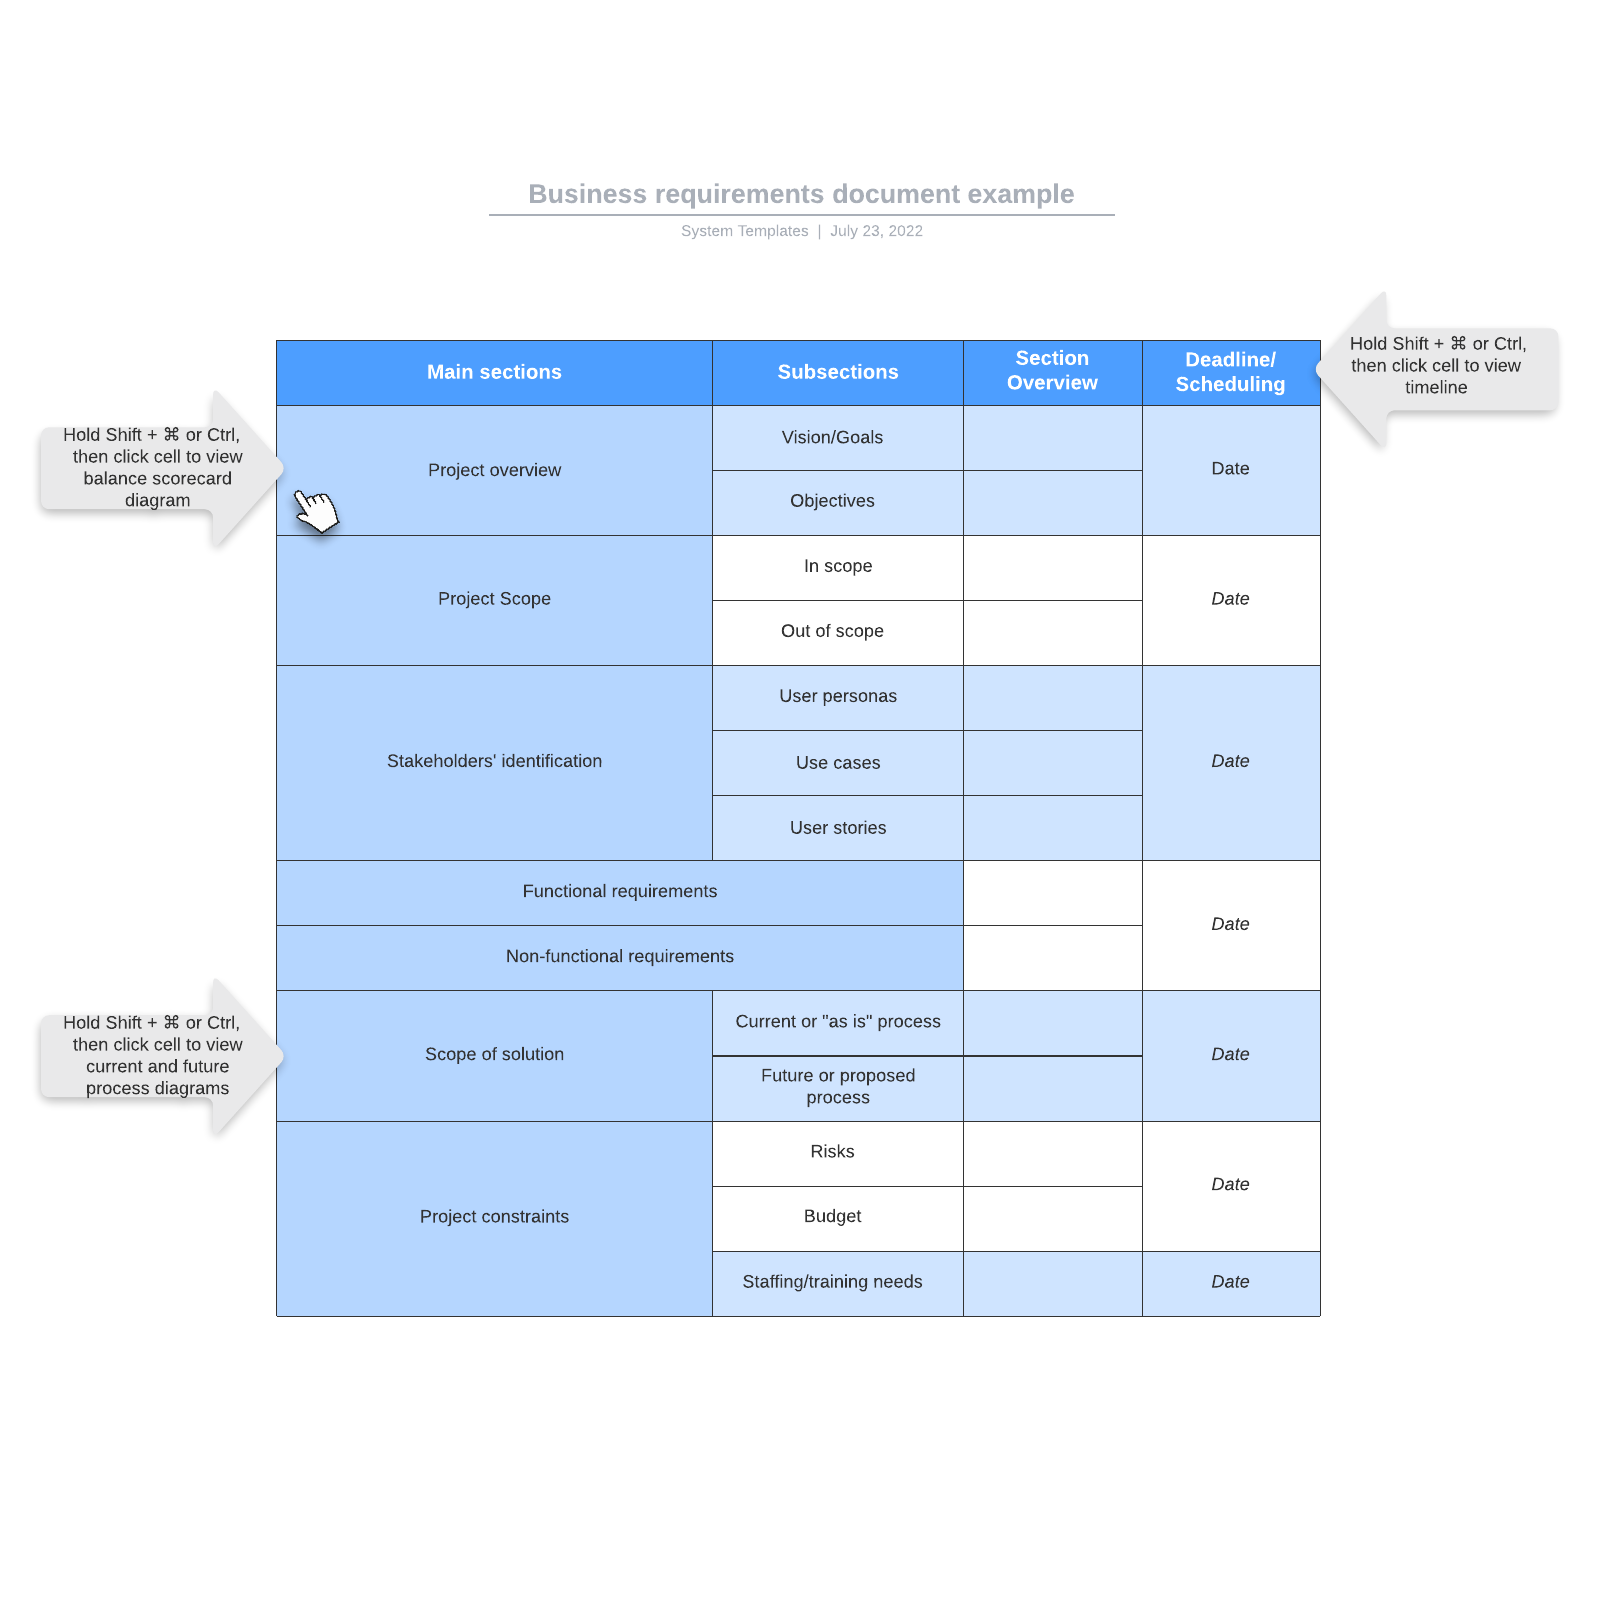 Business requirements document example